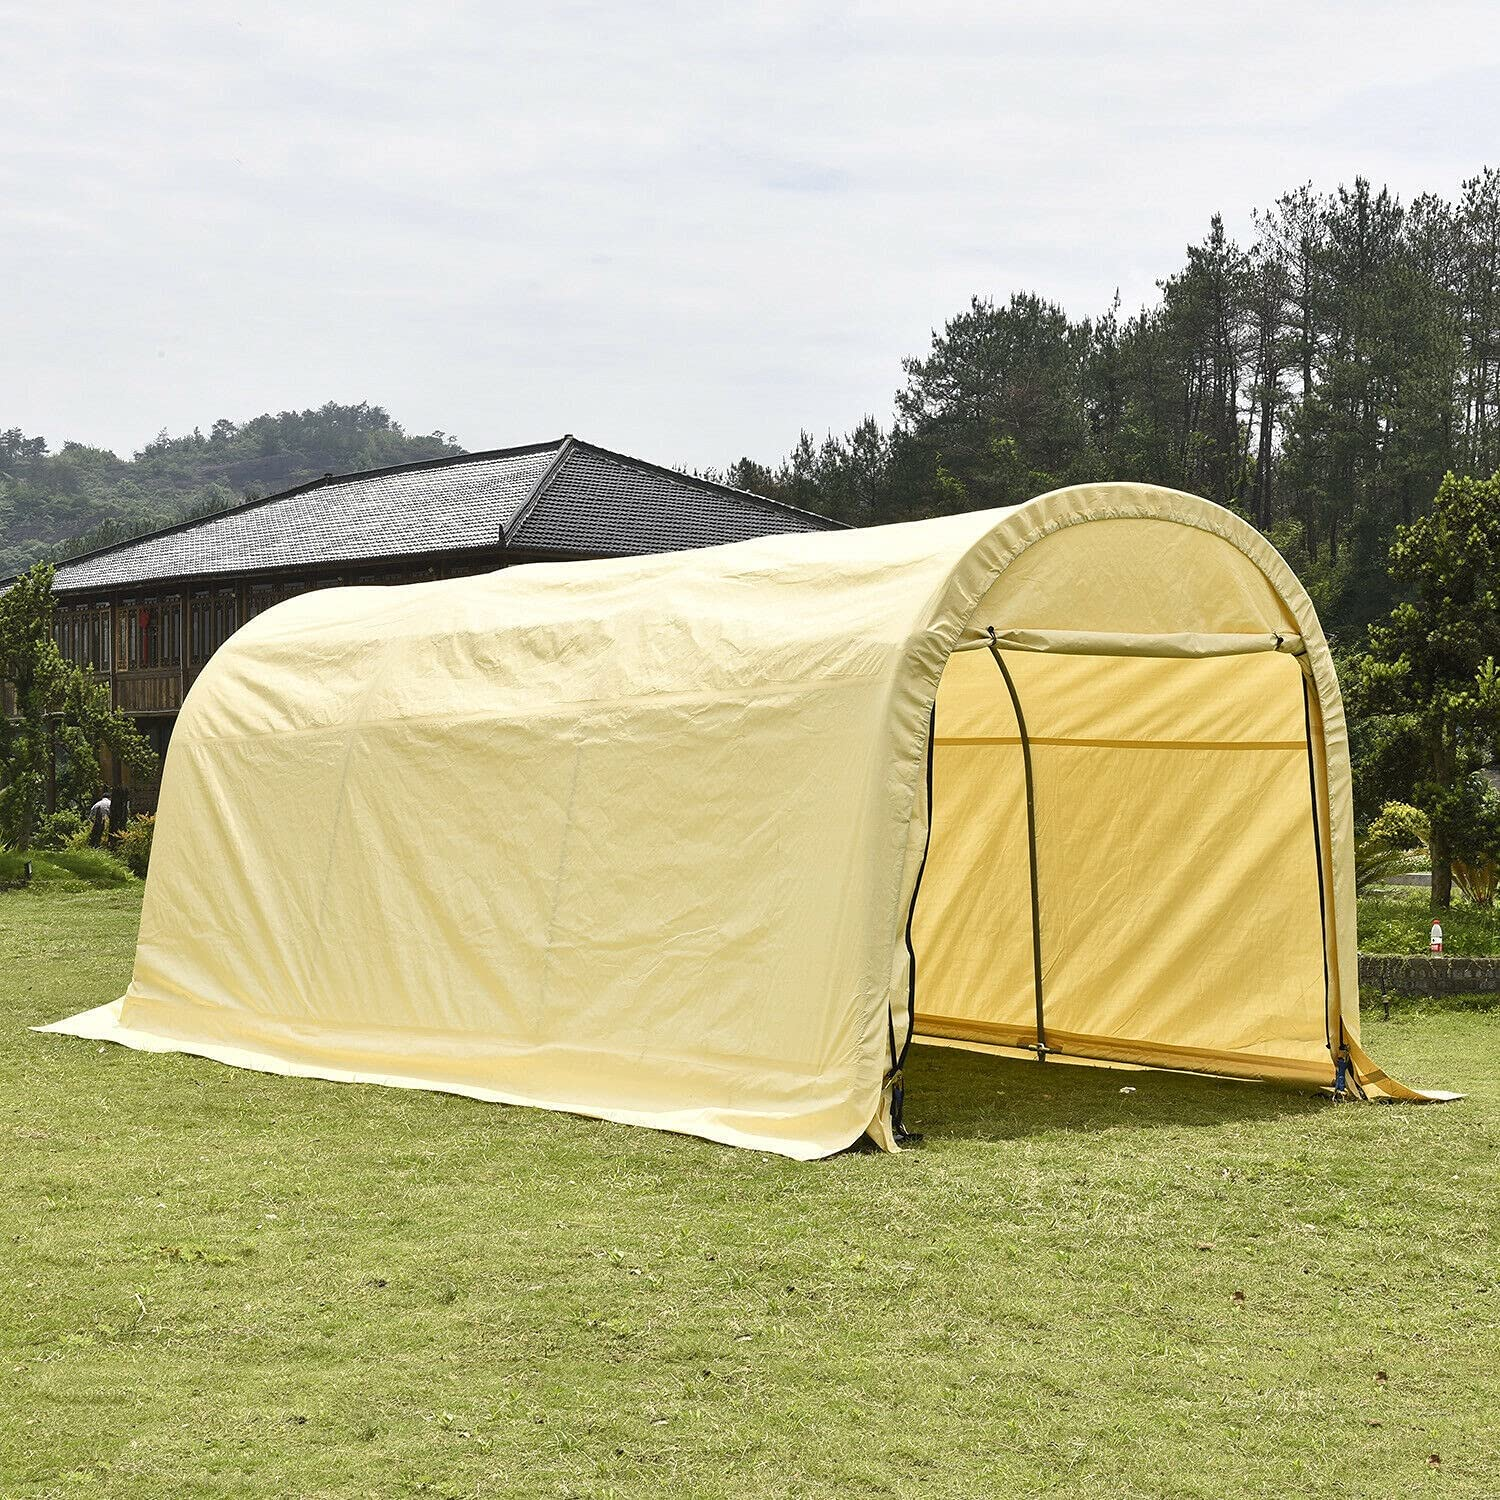 HUIJK Storage Sheds 10'x20'x8' Beige Carport Canopy Tent New Year-end annual account life